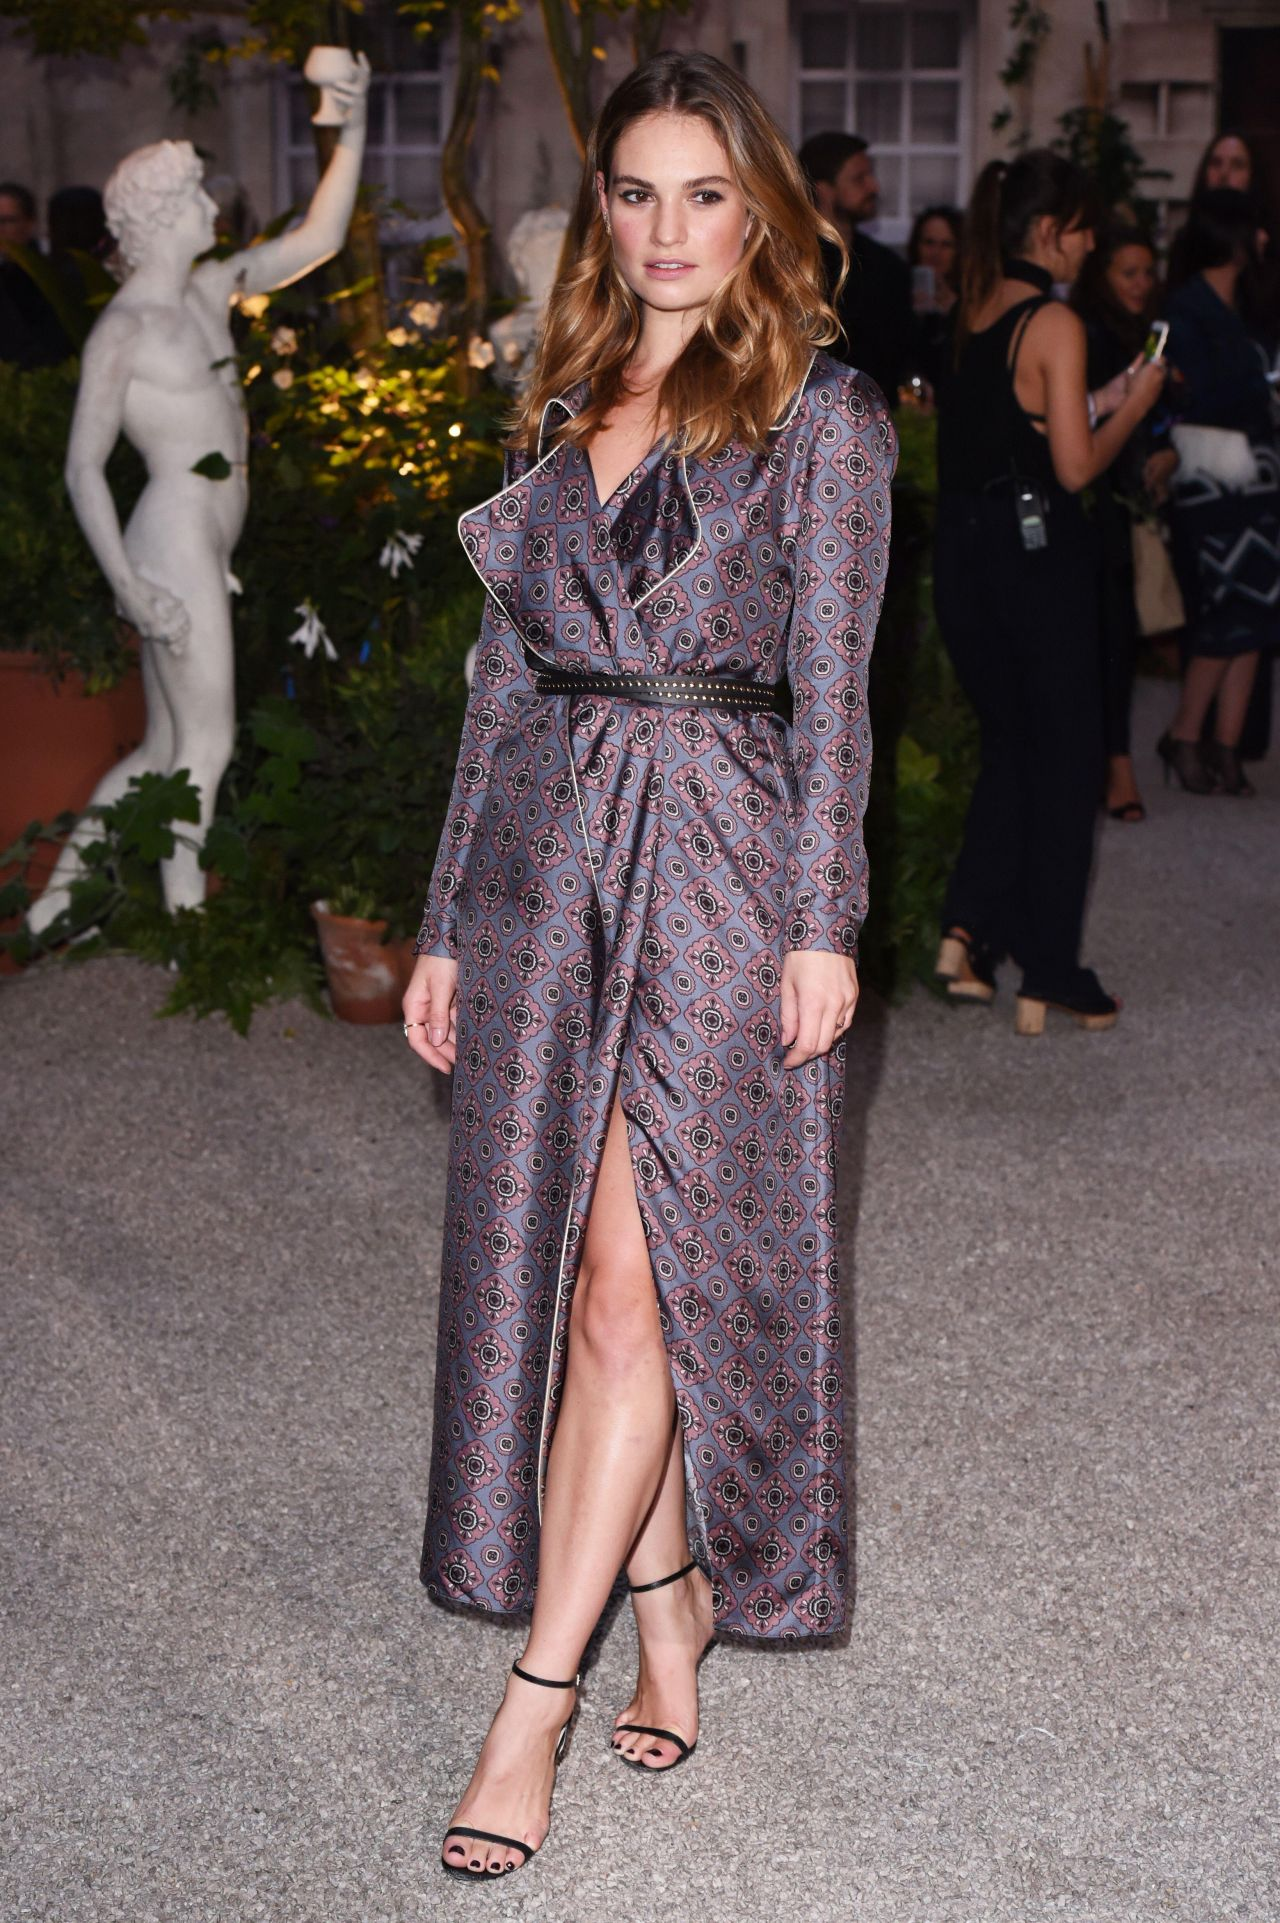 Lily James At Burberry Show London Fashion Week 09 19 2016